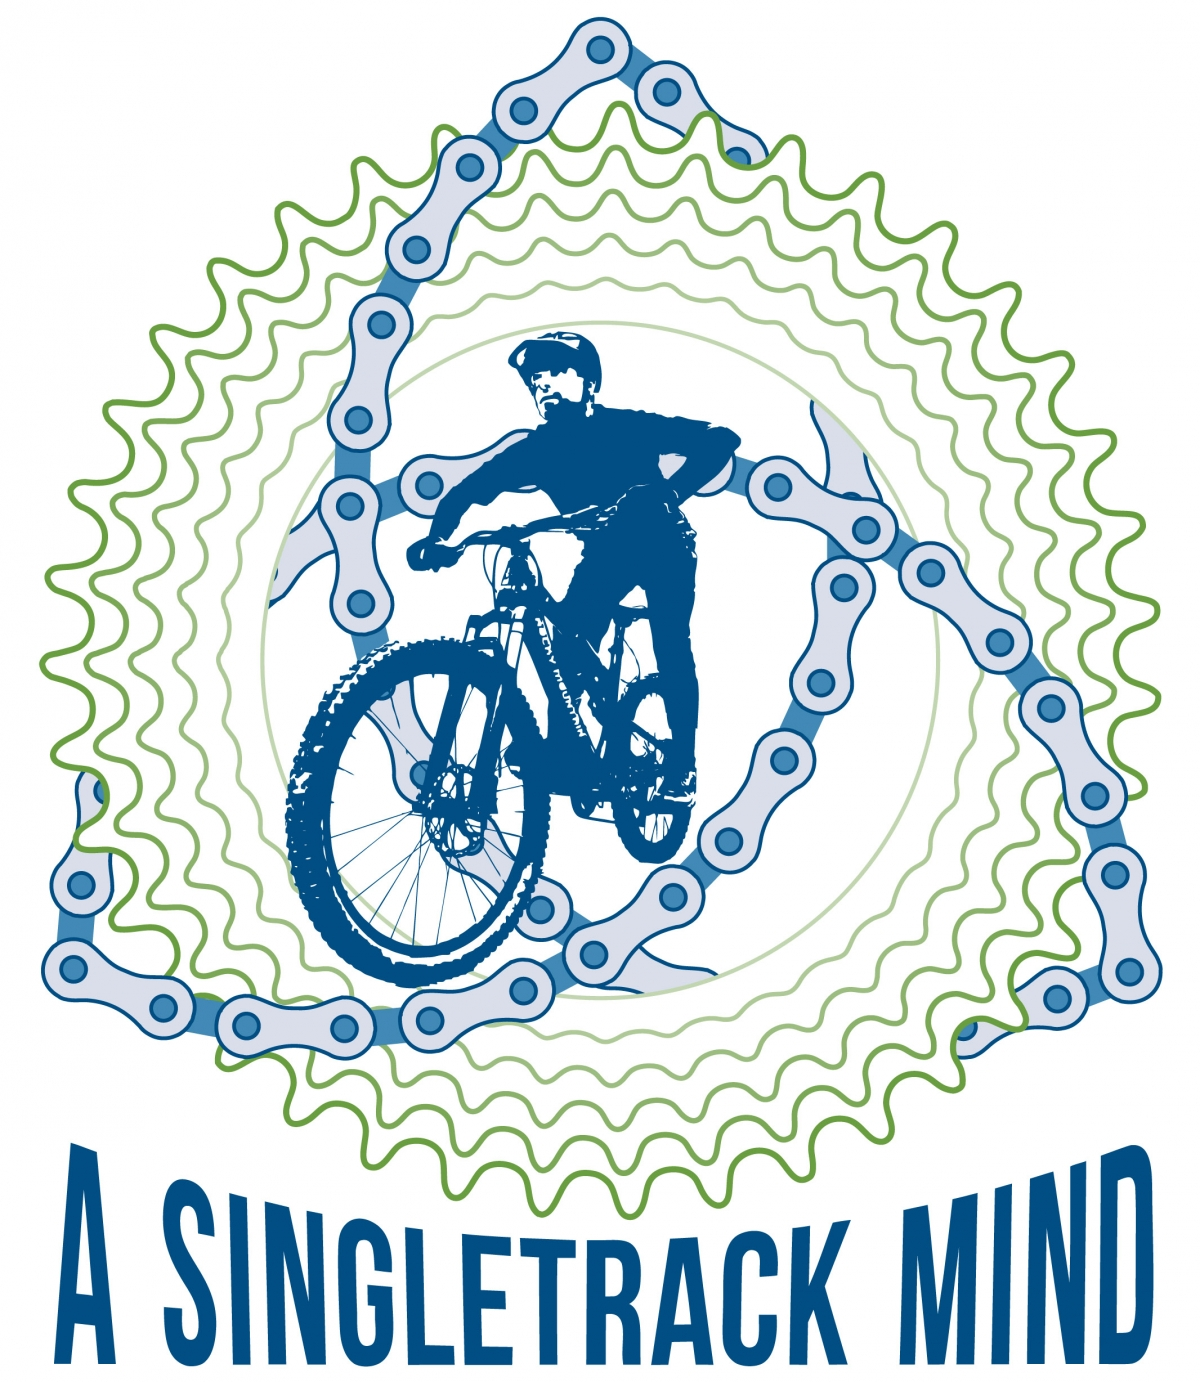 A Singletrack Mind-Los Angeles 2-day Core Fundamentals /wheel lifts & cornering Mountain Bike Clinic